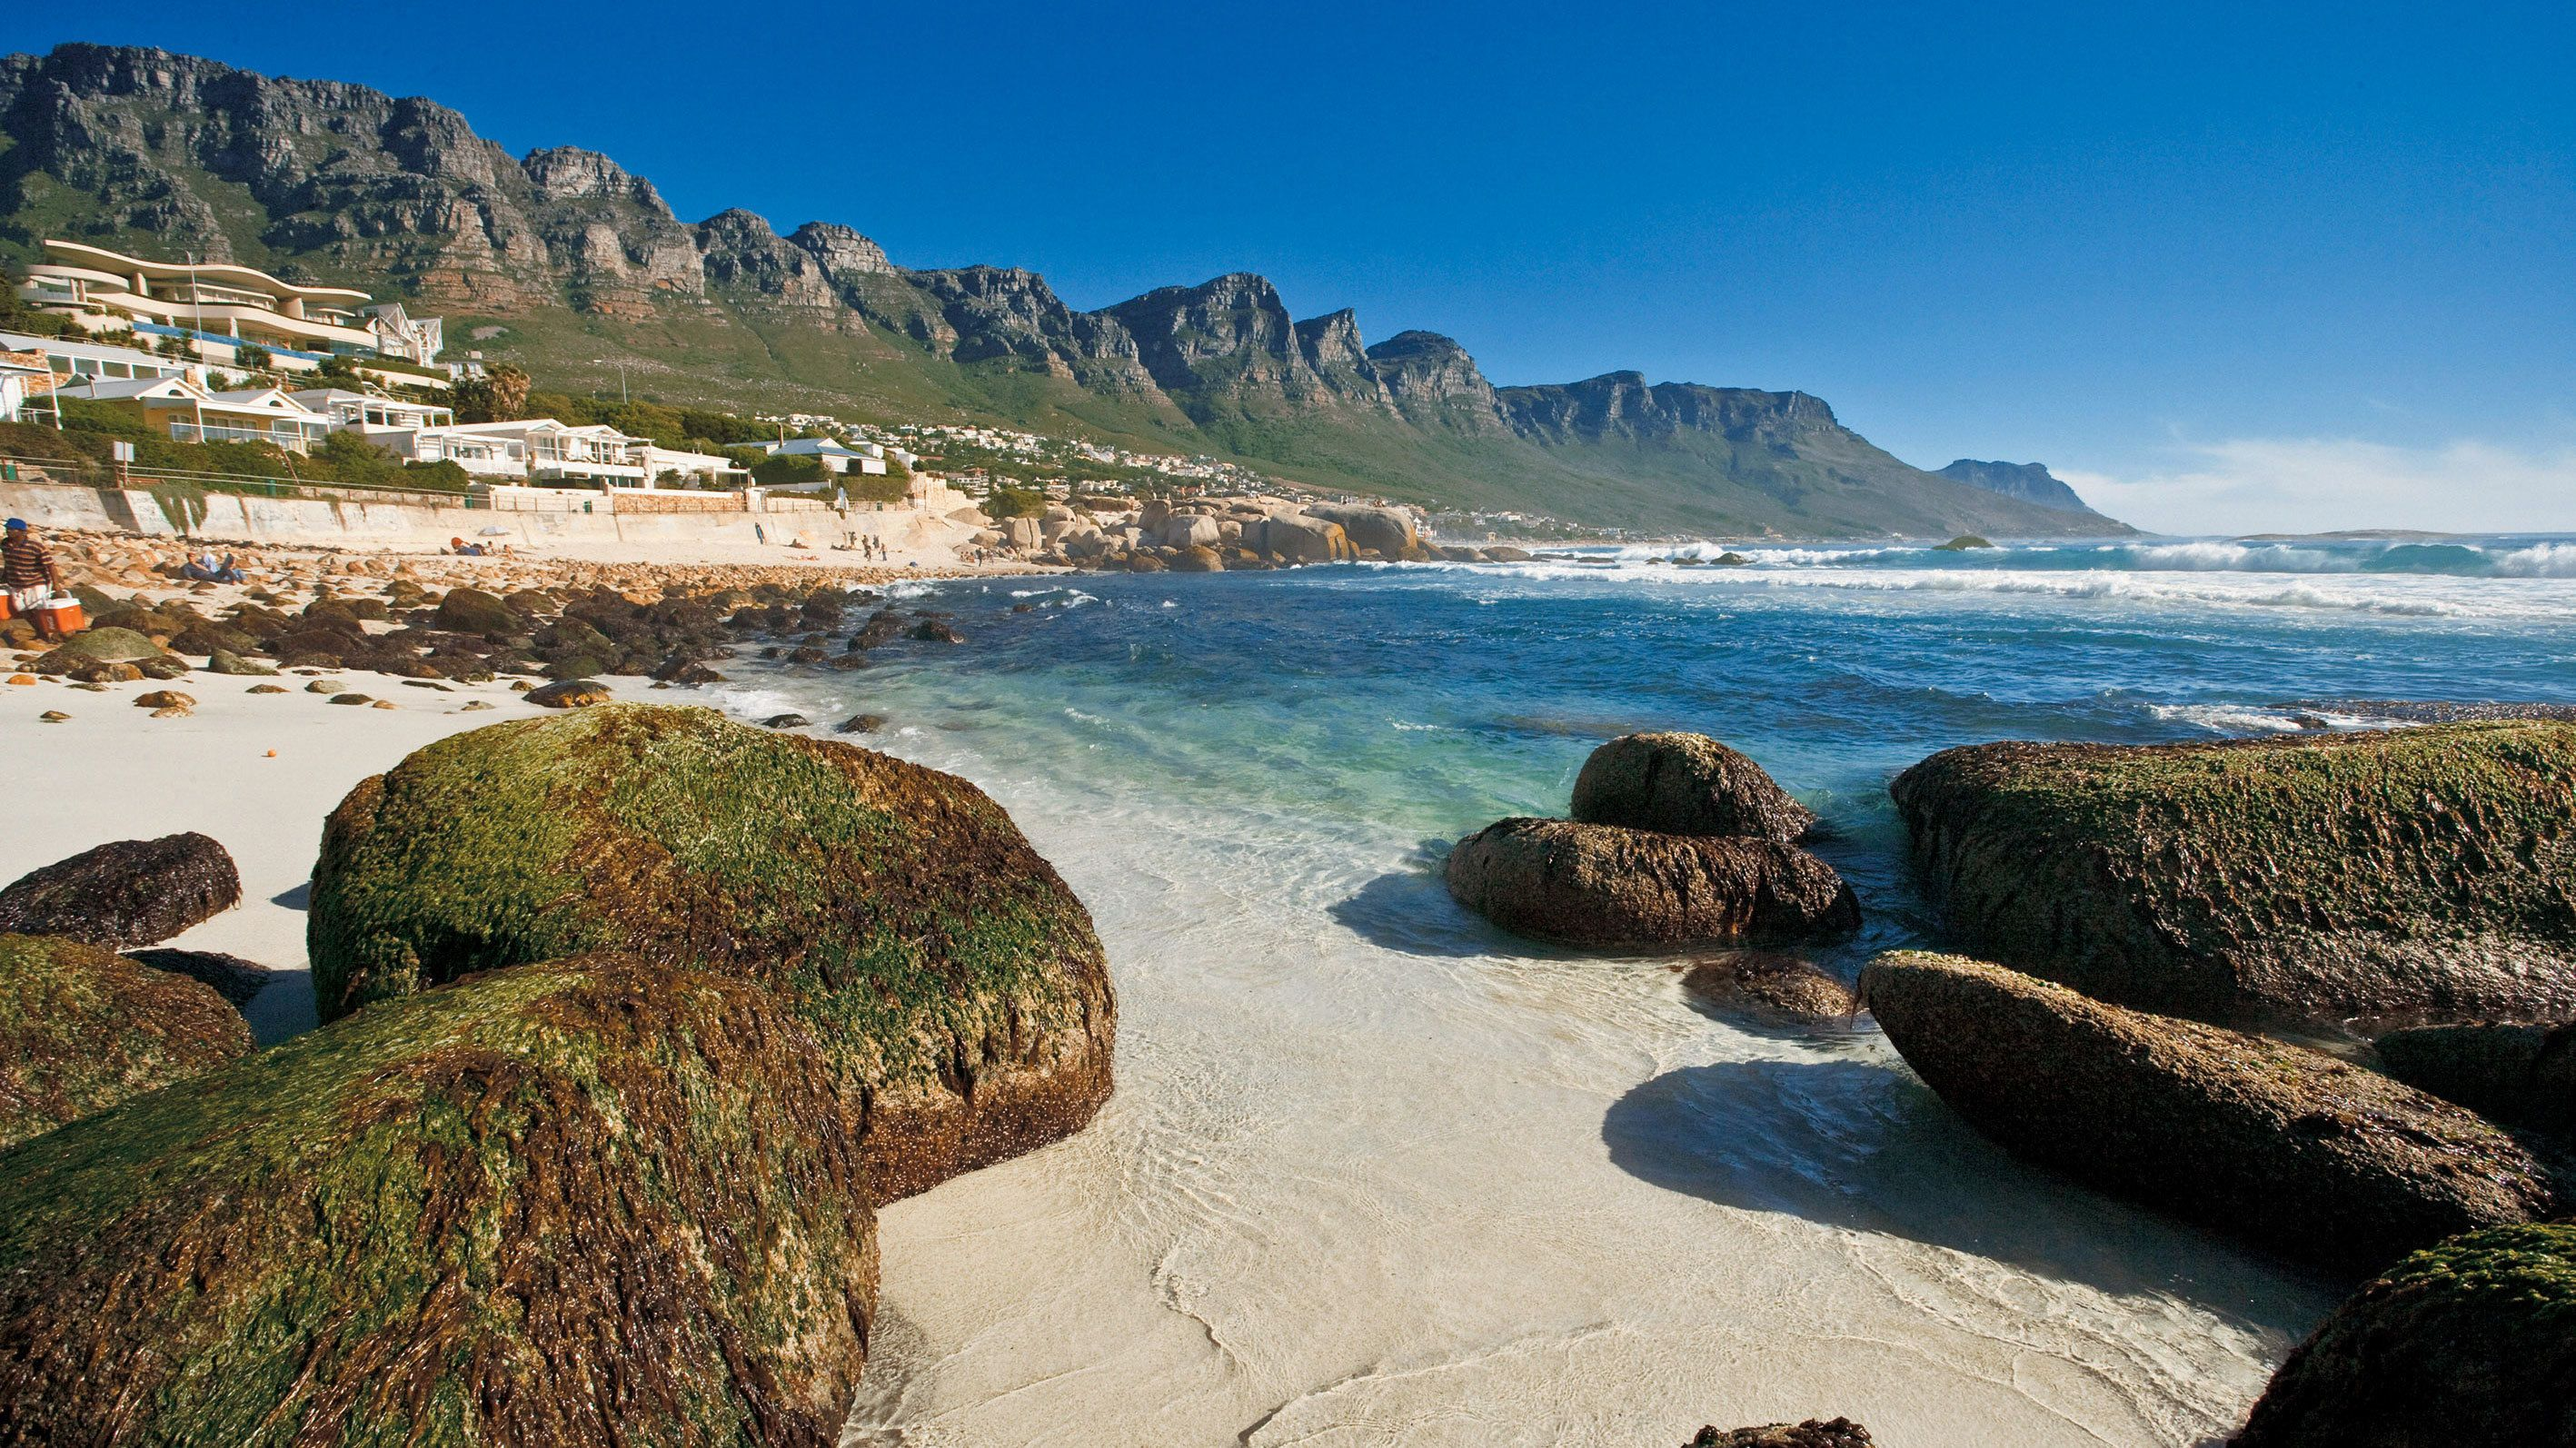 Low tide at the beach in Cape Town